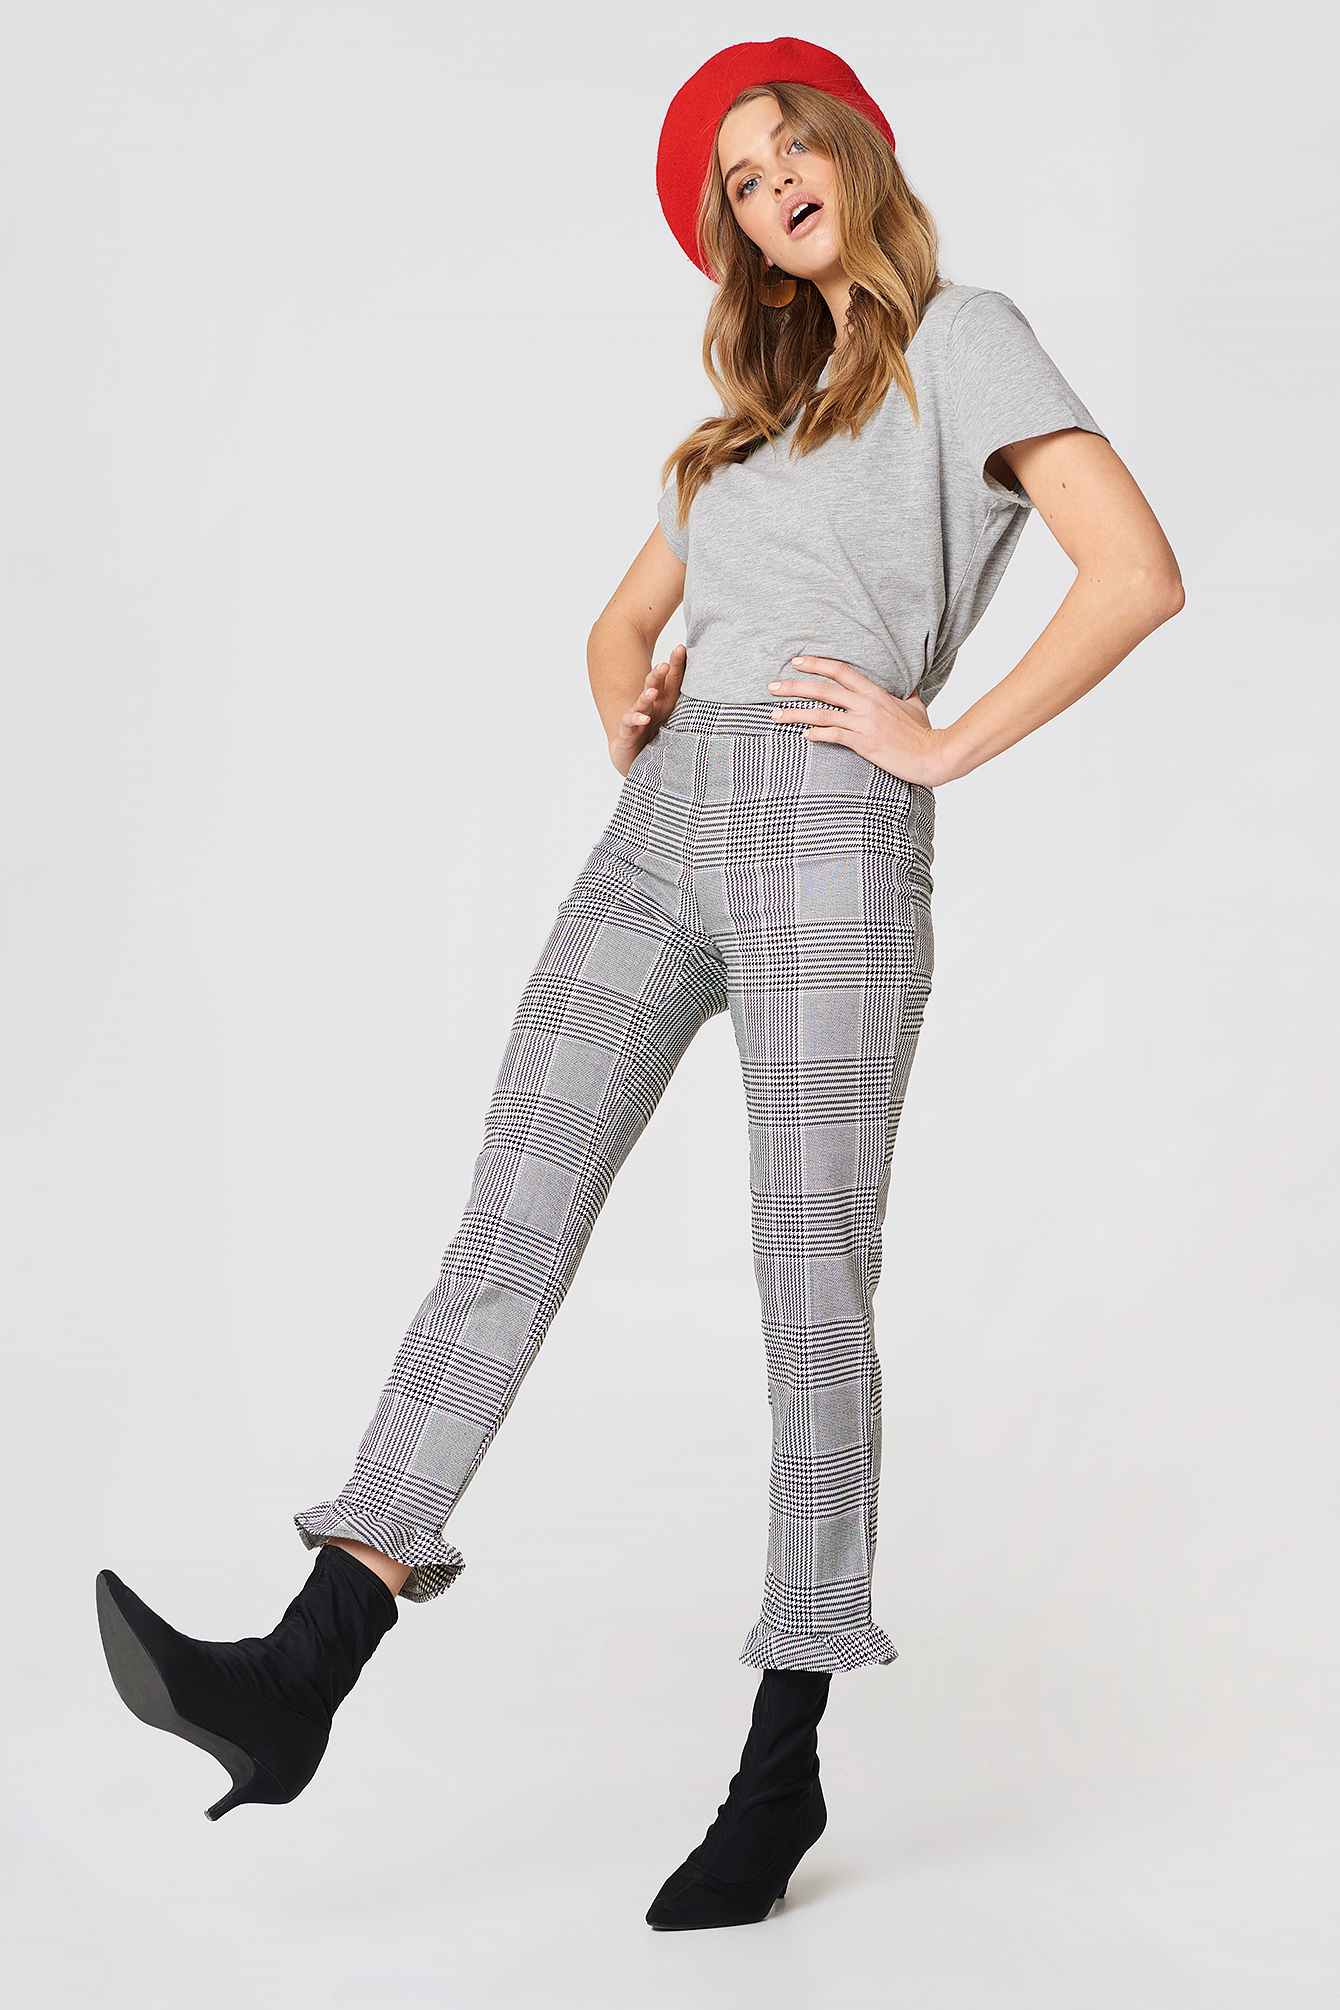 CHECKERED PANTS - MULTICOLOR